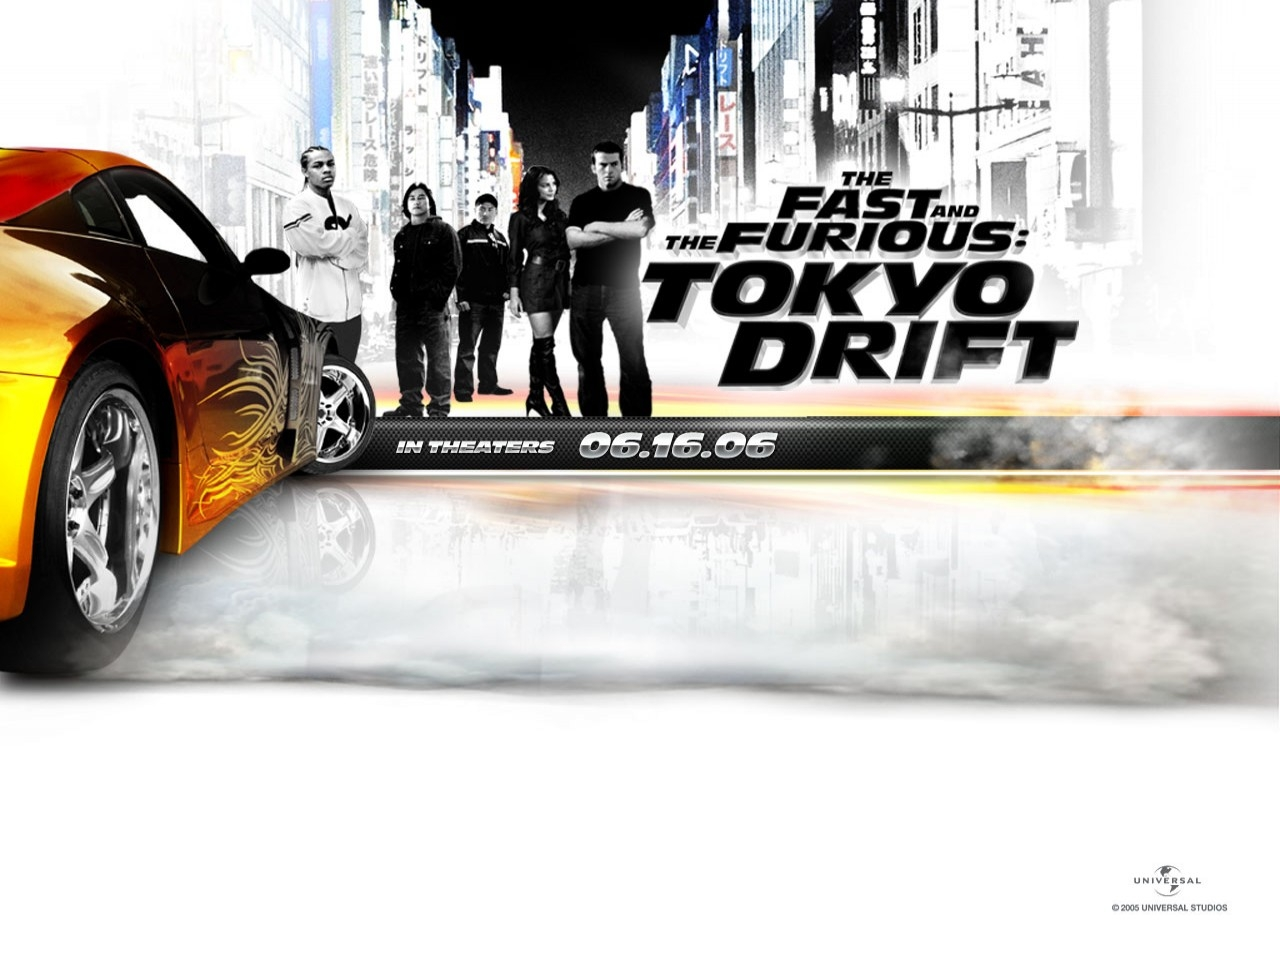 Wallpaper del film The Fast and the Furious: Tokyo Drift